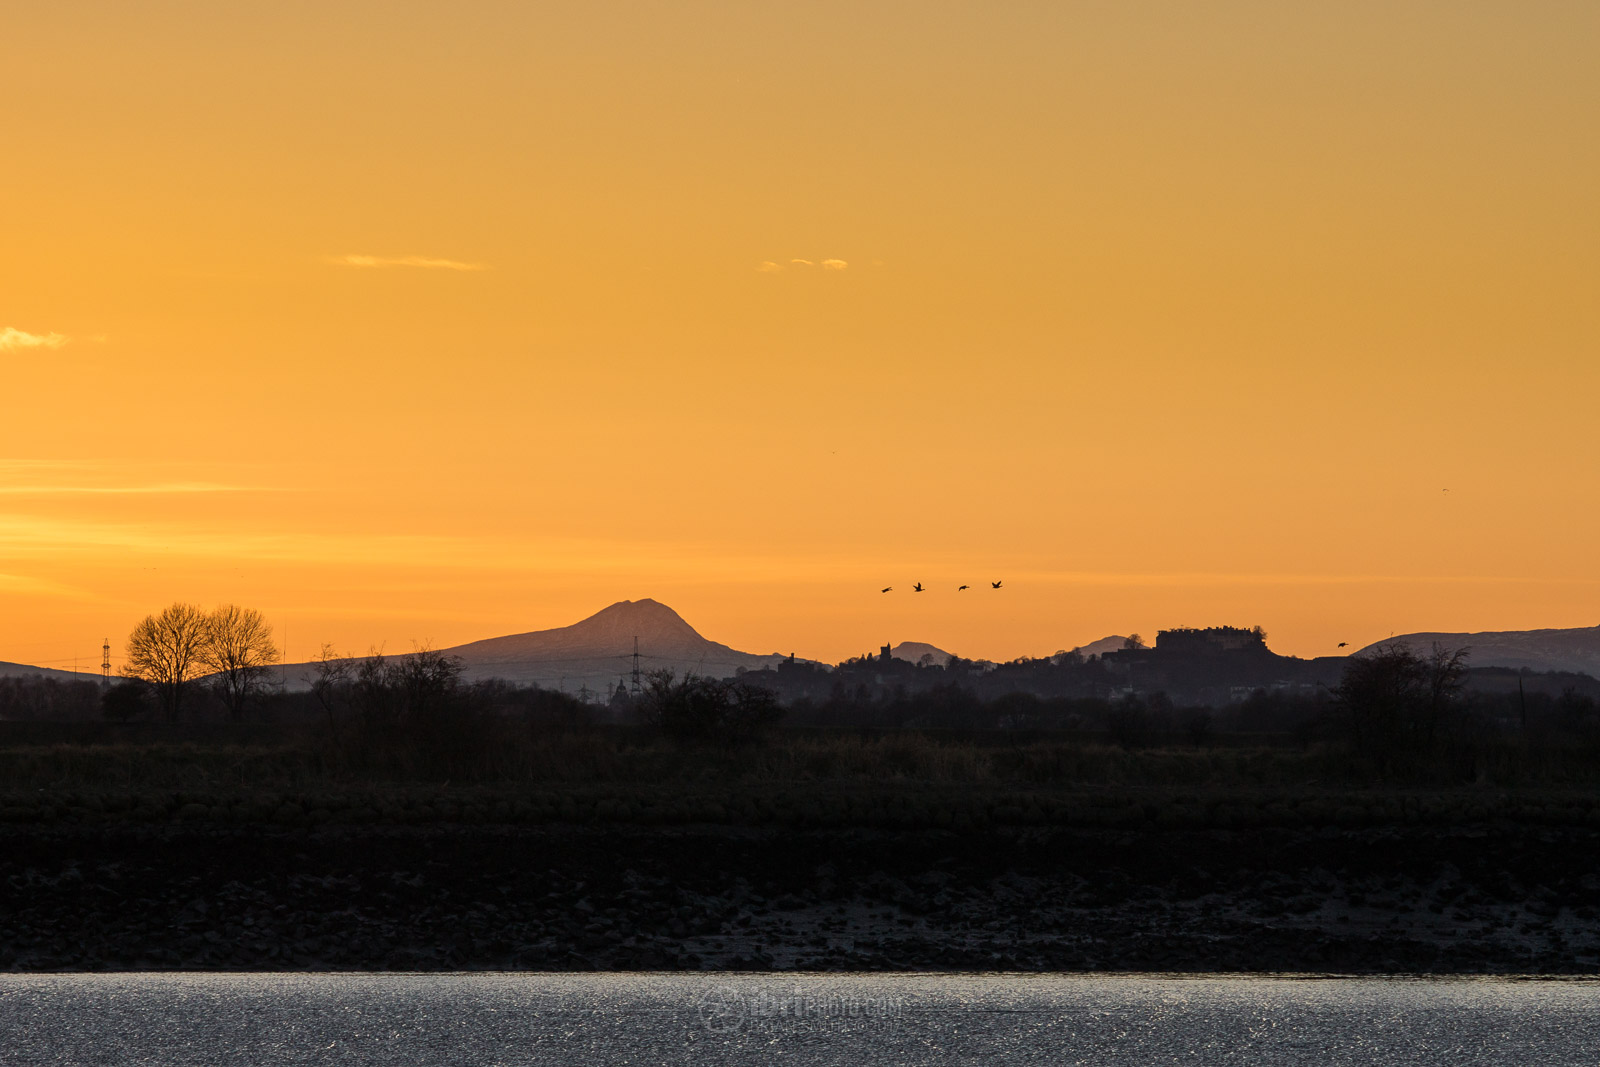 Ben Lomond and Stirling Castle from South Alloa, Stirlingshire.Sony Nex 7 - Miranda 24mm f2.8 (legacy lens) - 1/640 - f5.6 - ISO400